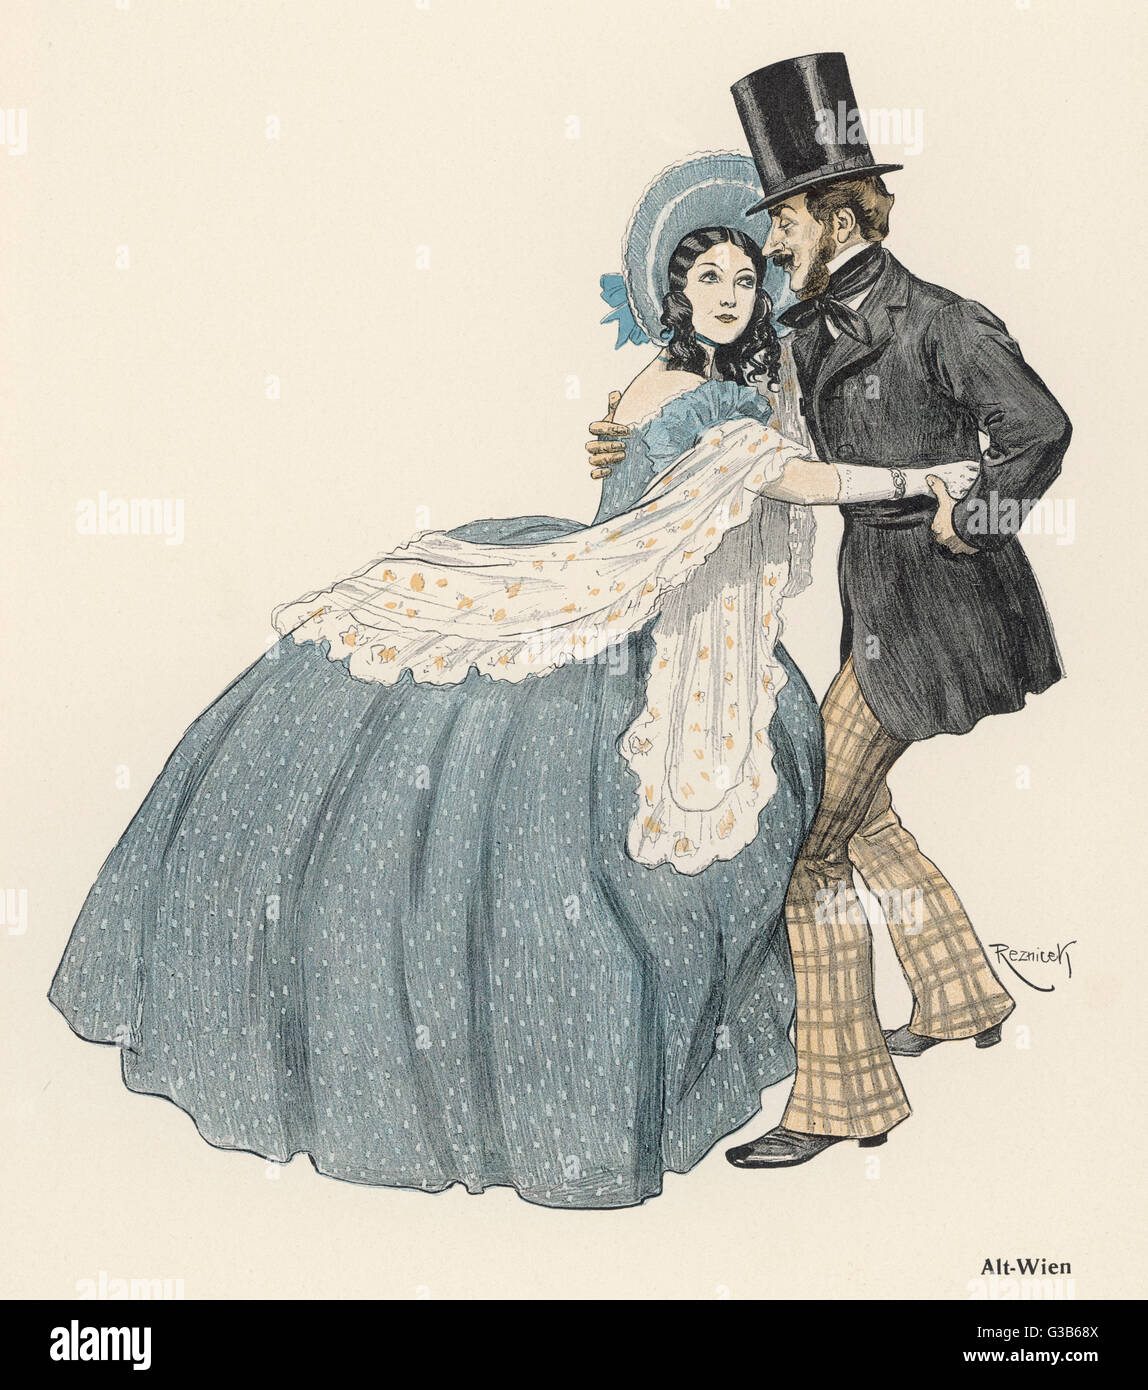 'Alt Wien' A romantic couple manage to  dance together in old Vienna,  despite the emcumbrance of her crinoline - Stock Image